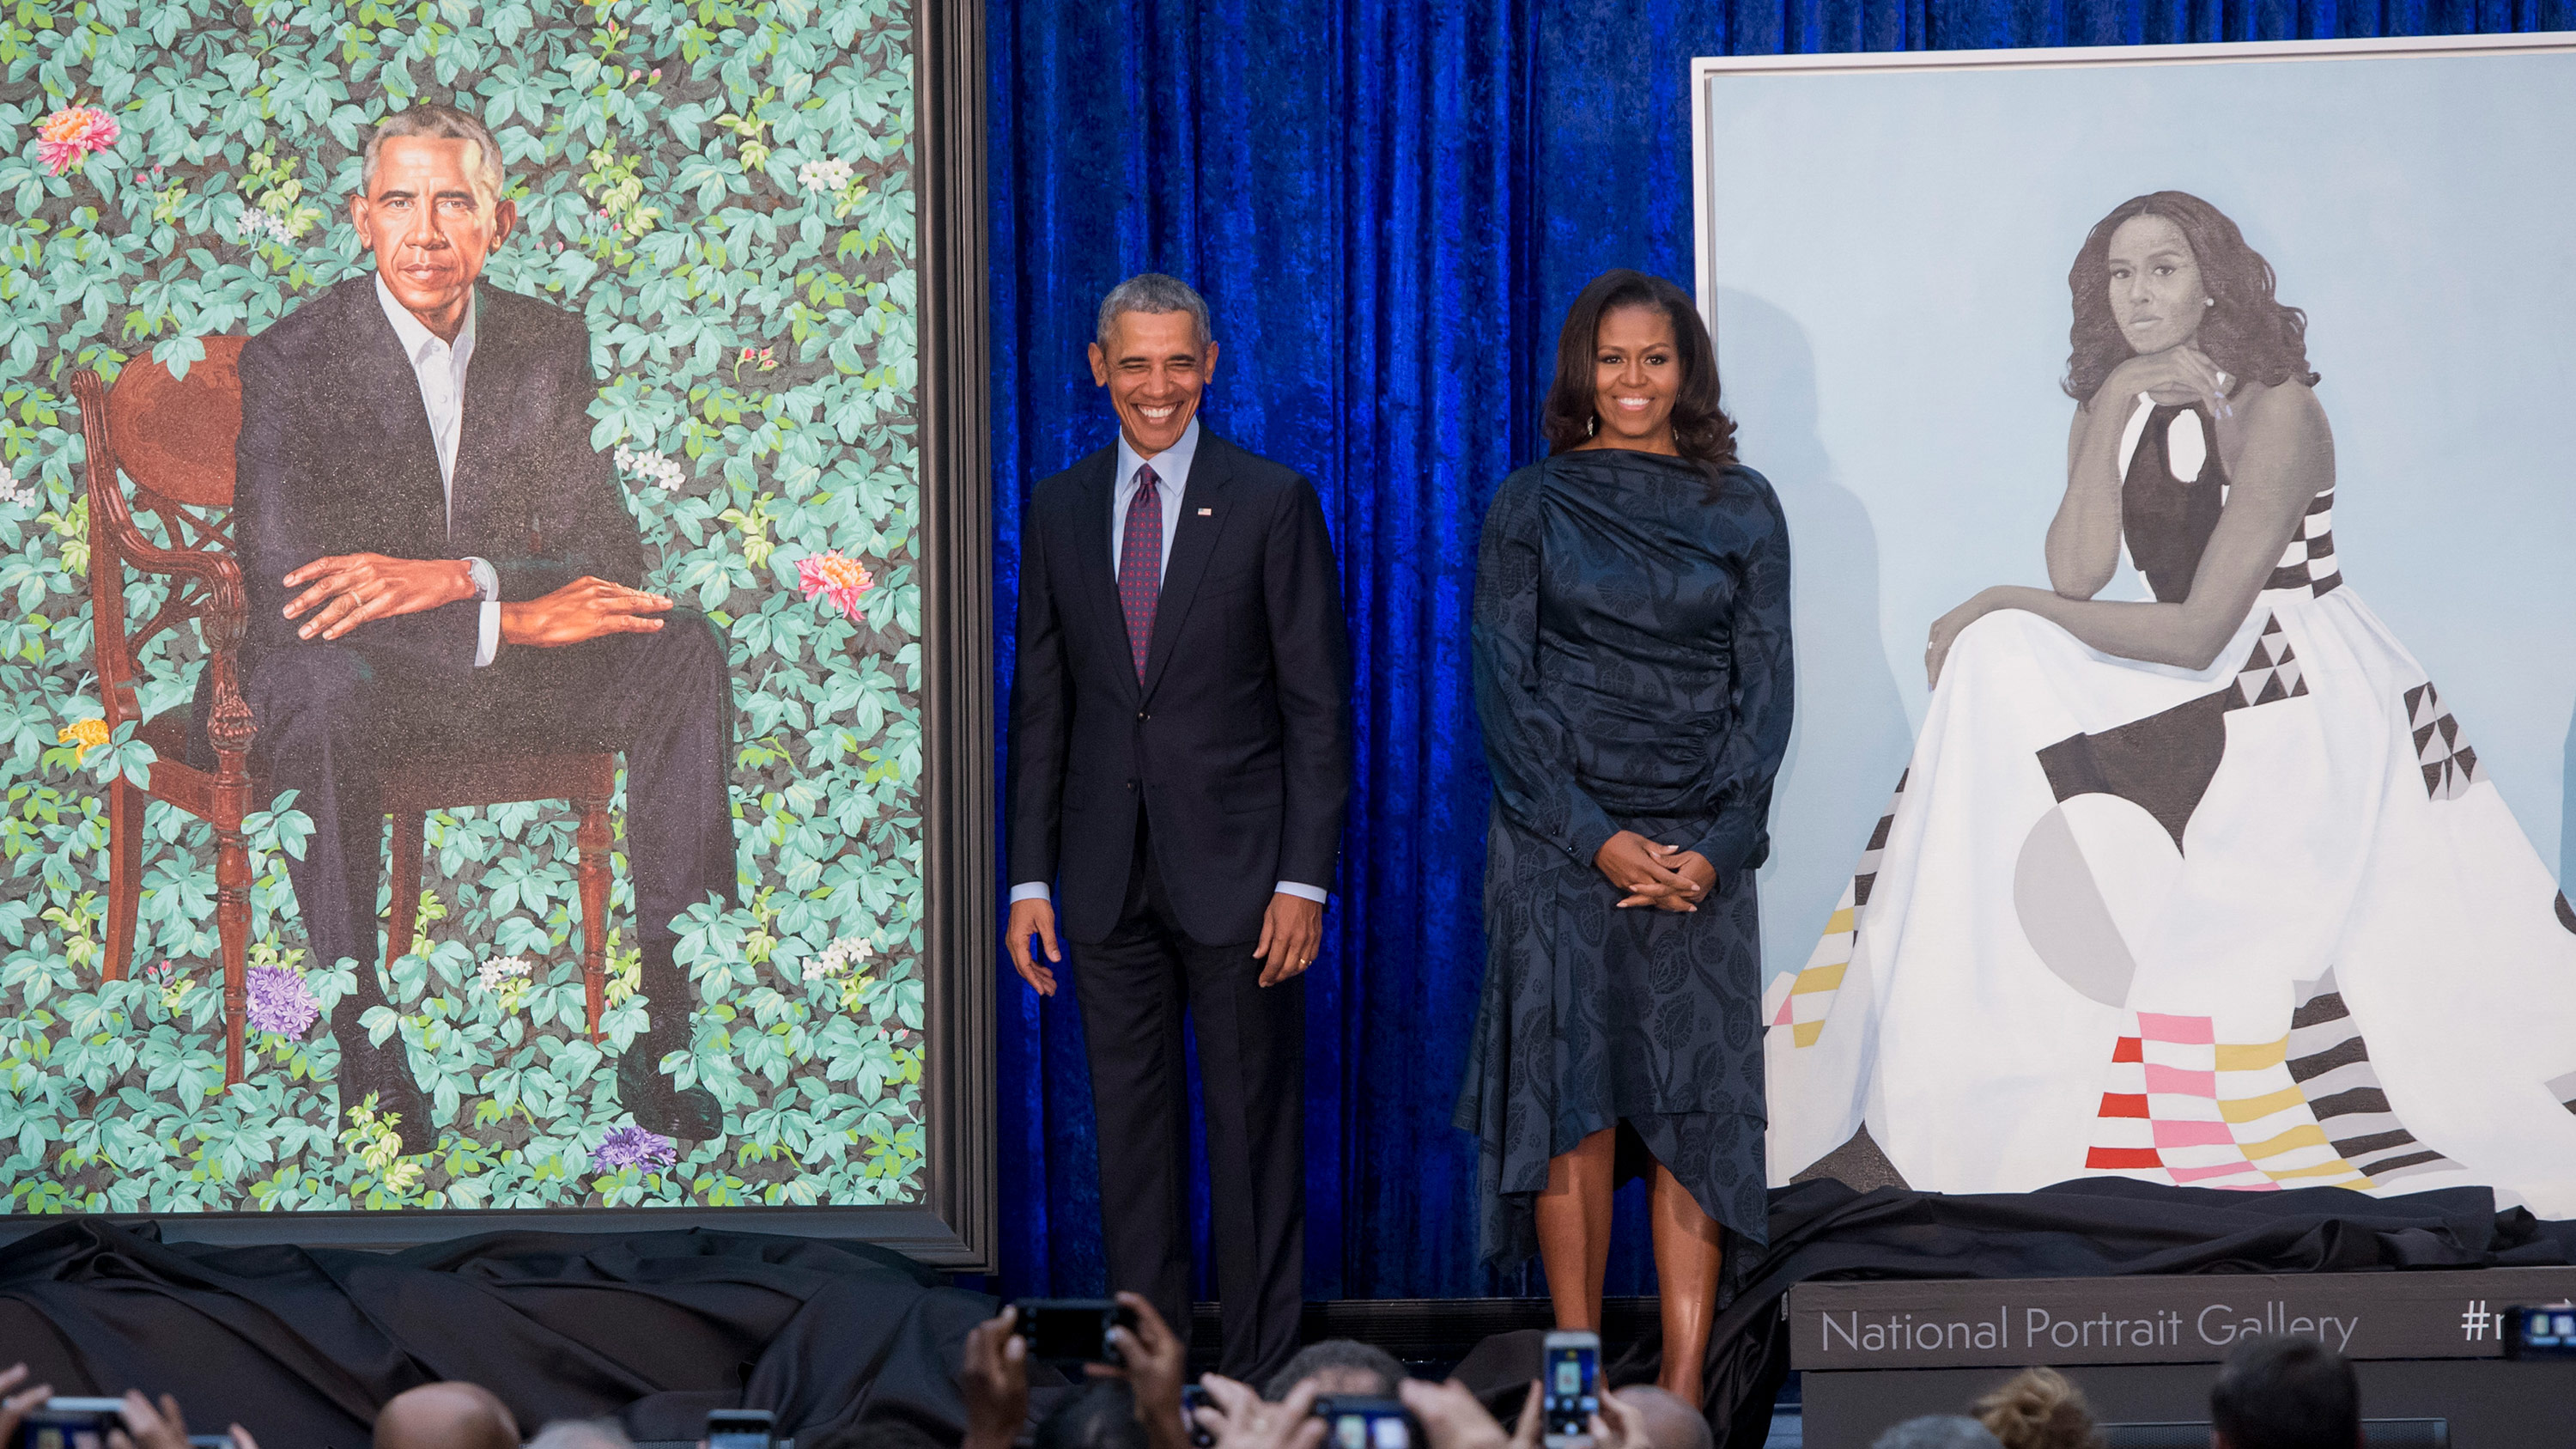 Obama portraits to go on year-long national tour in 2021